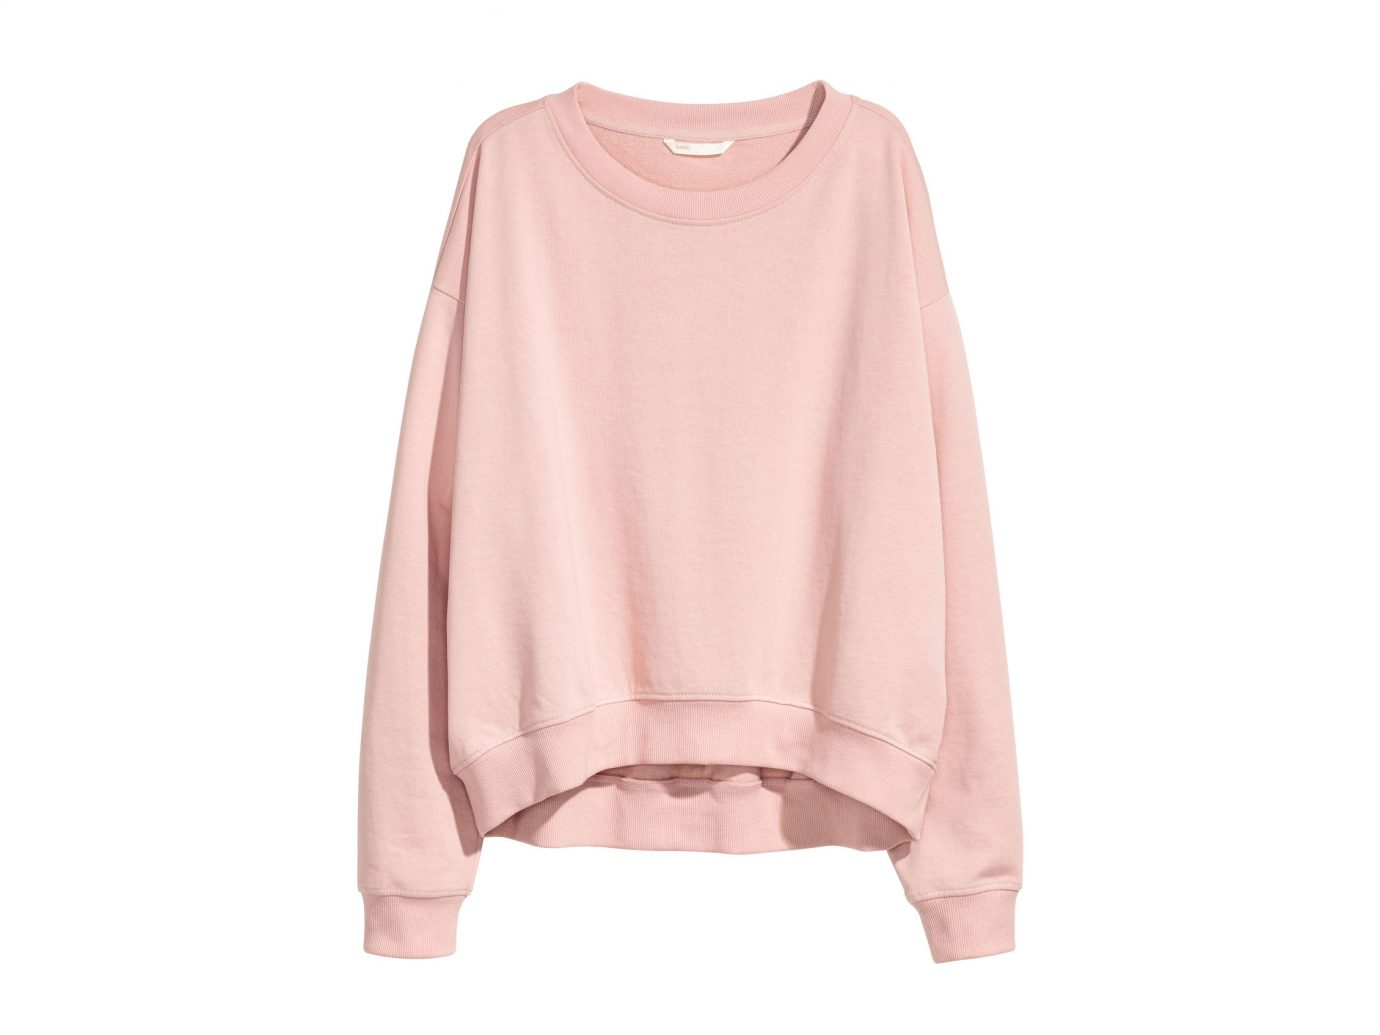 best sweatshirts, H&m